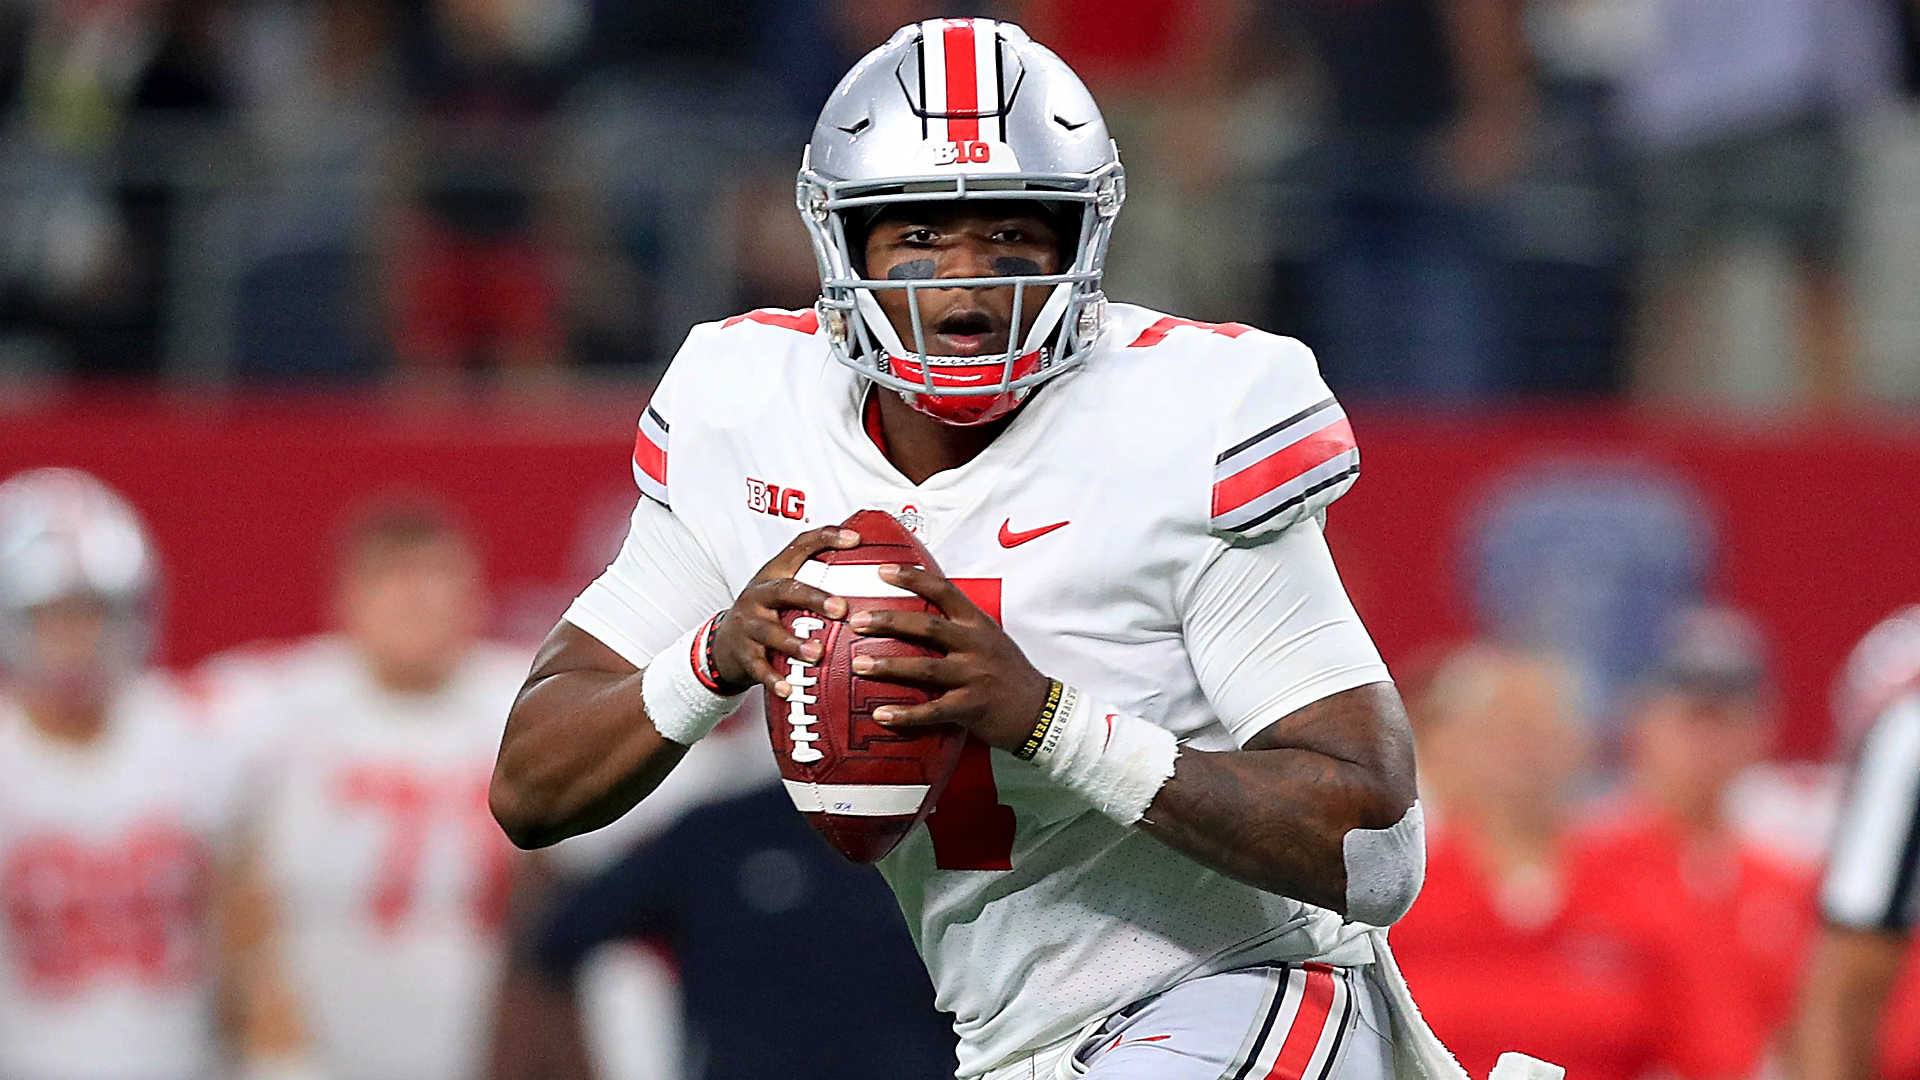 Ohio State outlasts Penn State in an instant classic: 3 takeaways